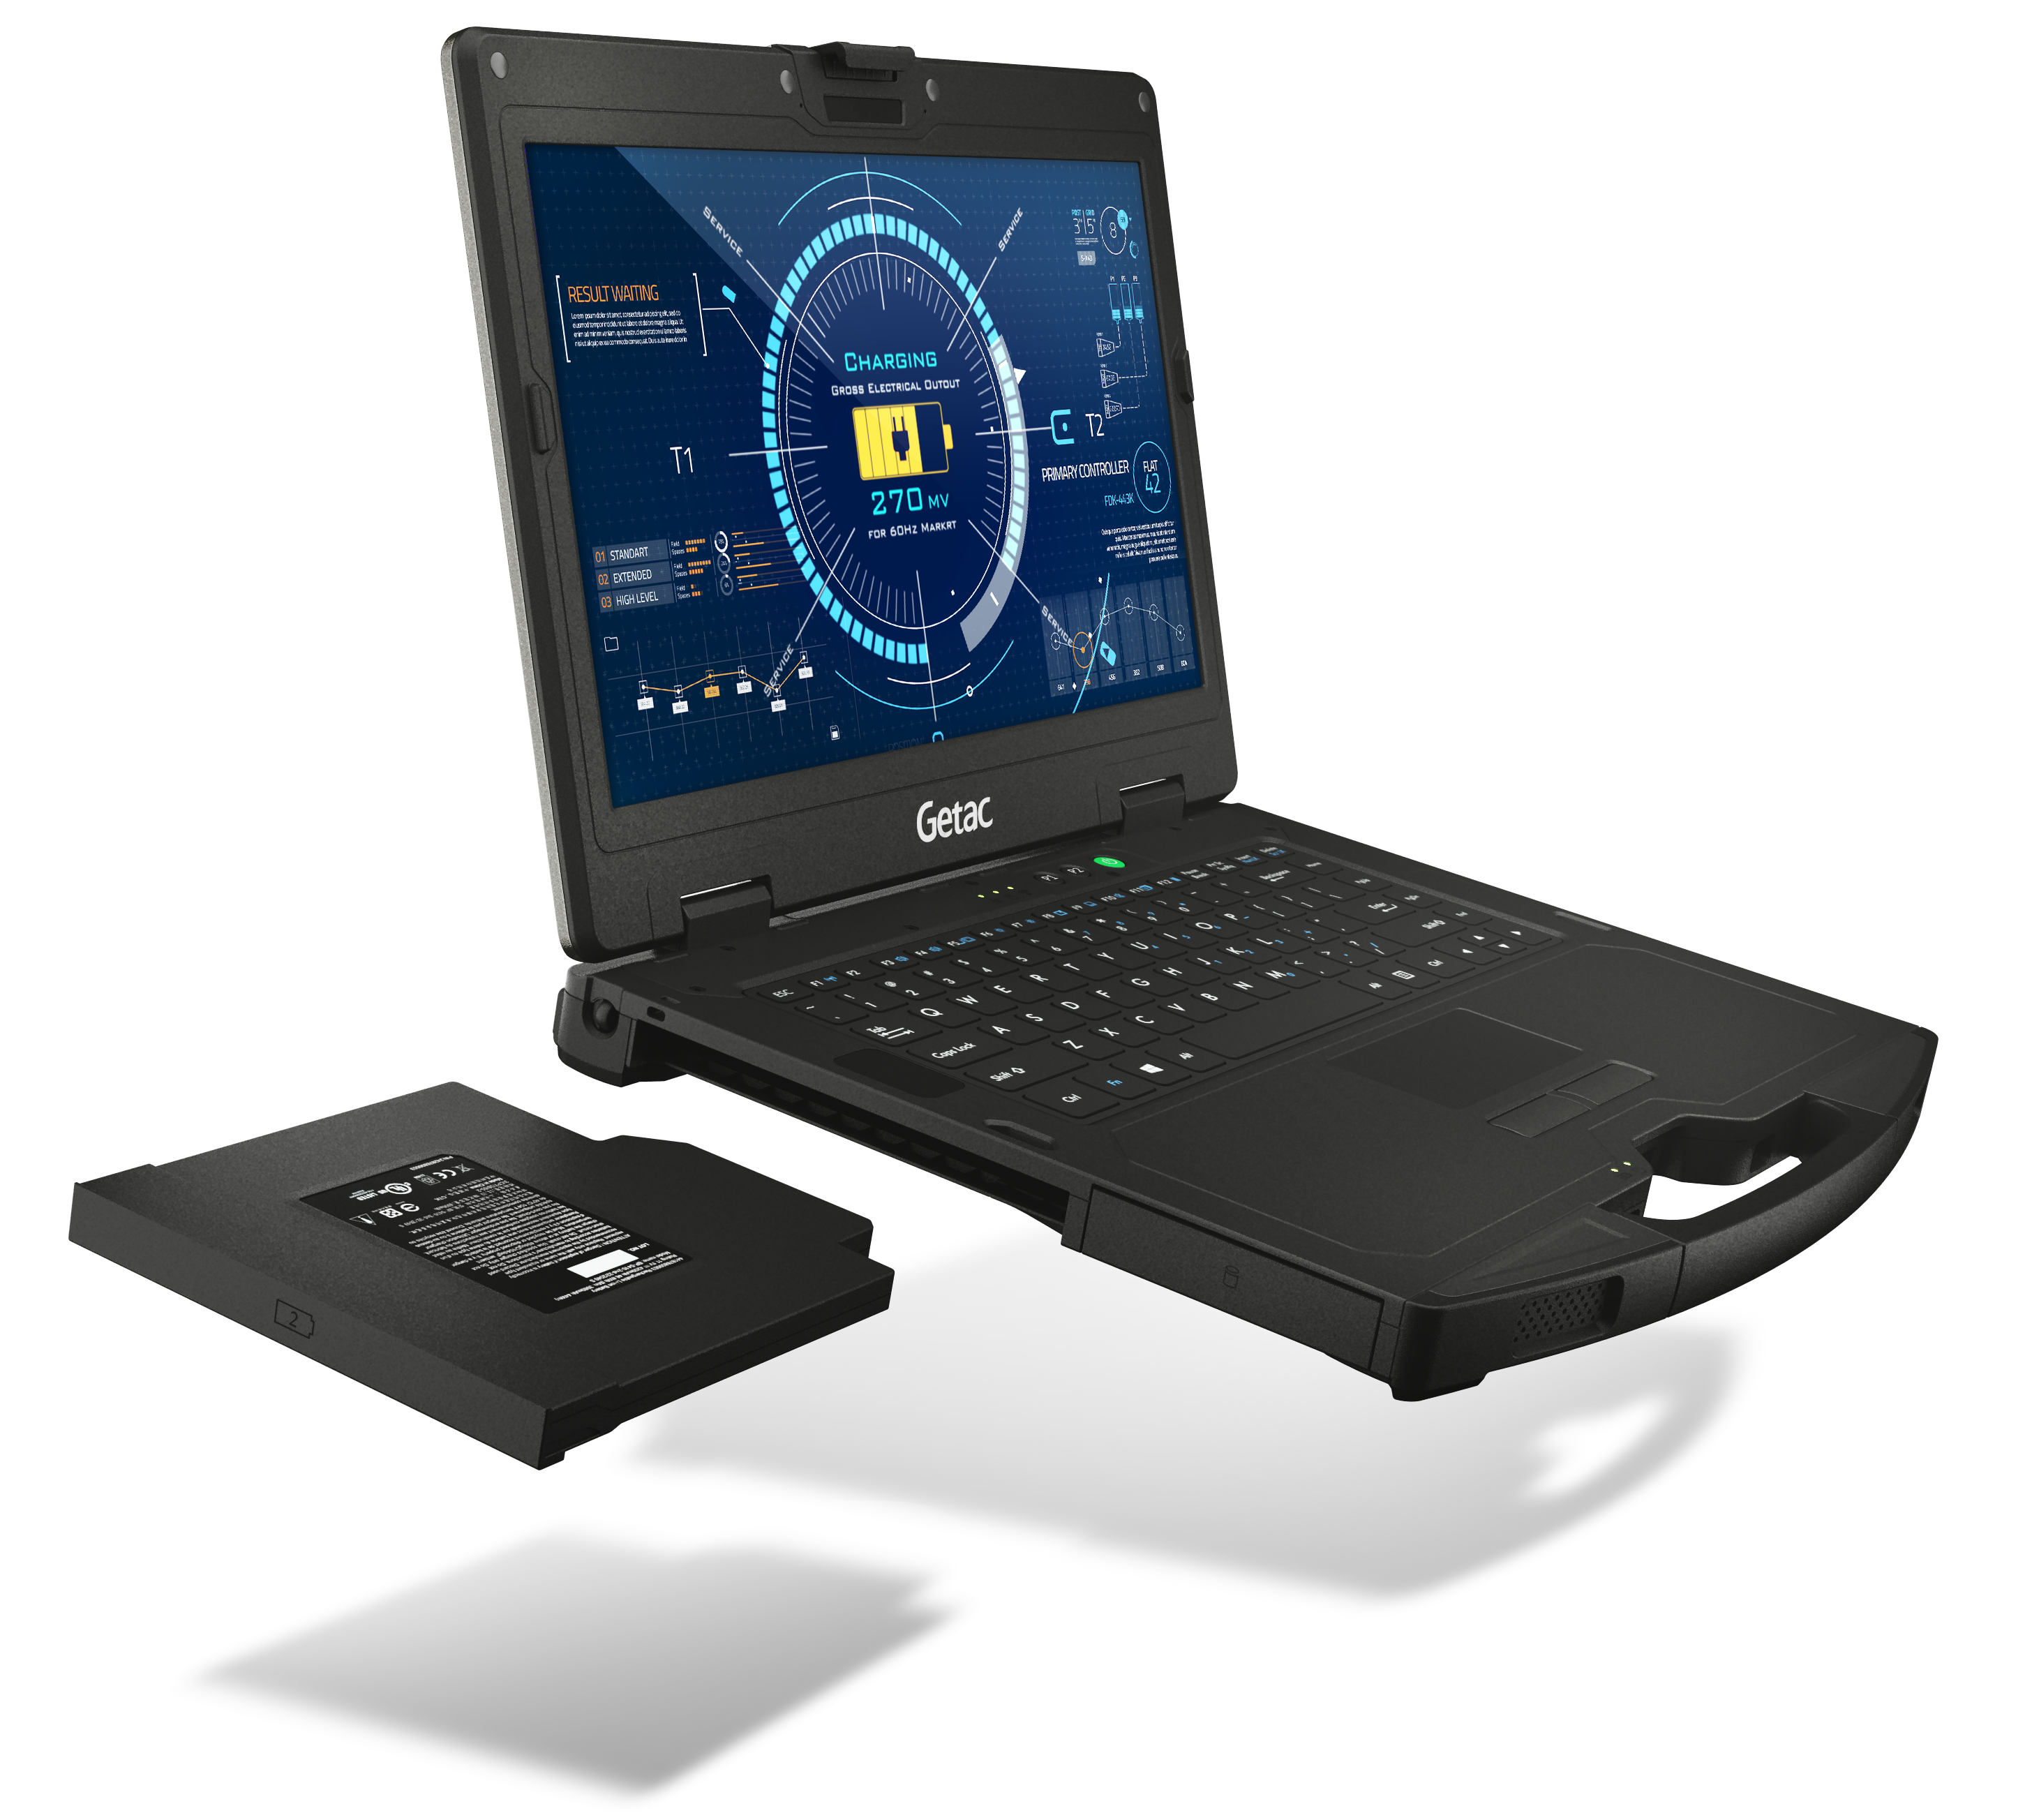 Getac S410 rugged laptop with hot-swappable battery